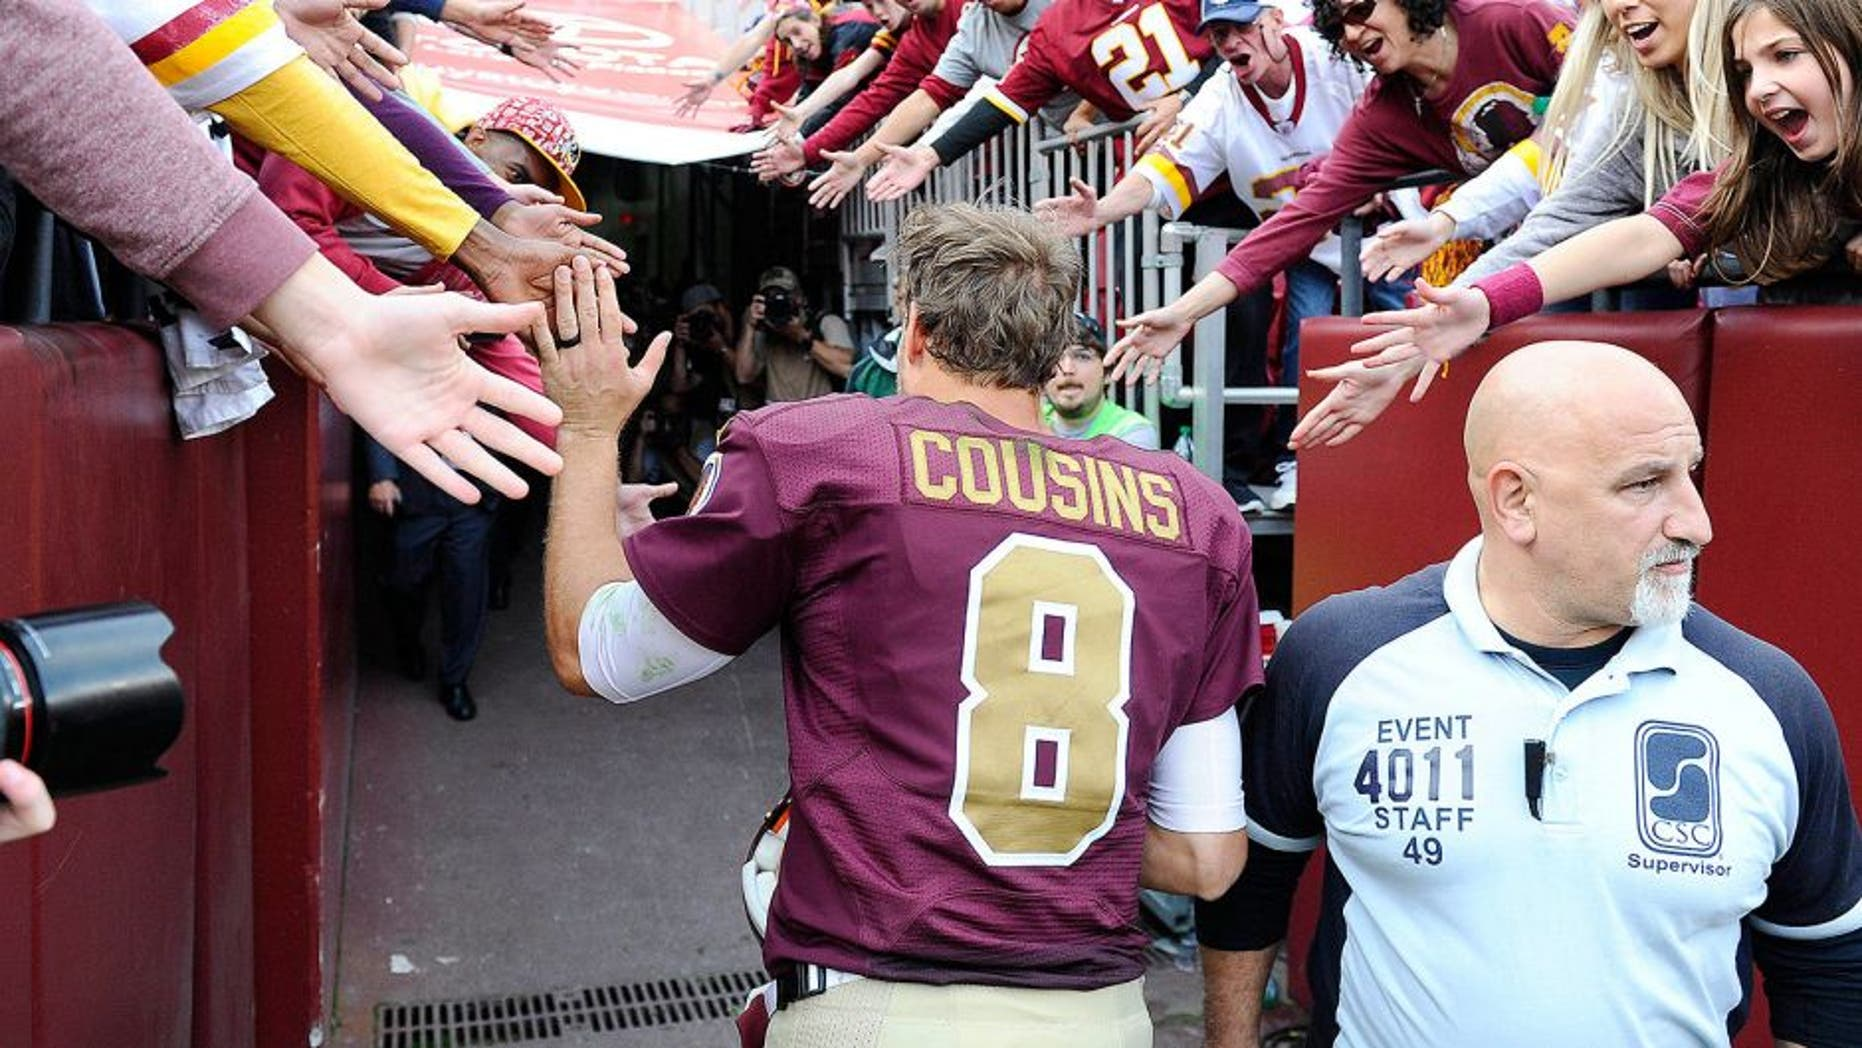 Oct 25, 2015; Landover, MD, USA; Washington Redskins quarterback Kirk Cousins (8) is congratulated by fans after the game between the Washington Redskins and the Tampa Bay Buccaneers at FedEx Field. The Washington Redskins won 31 - 30. Mandatory Credit: Brad Mills-USA TODAY Sports